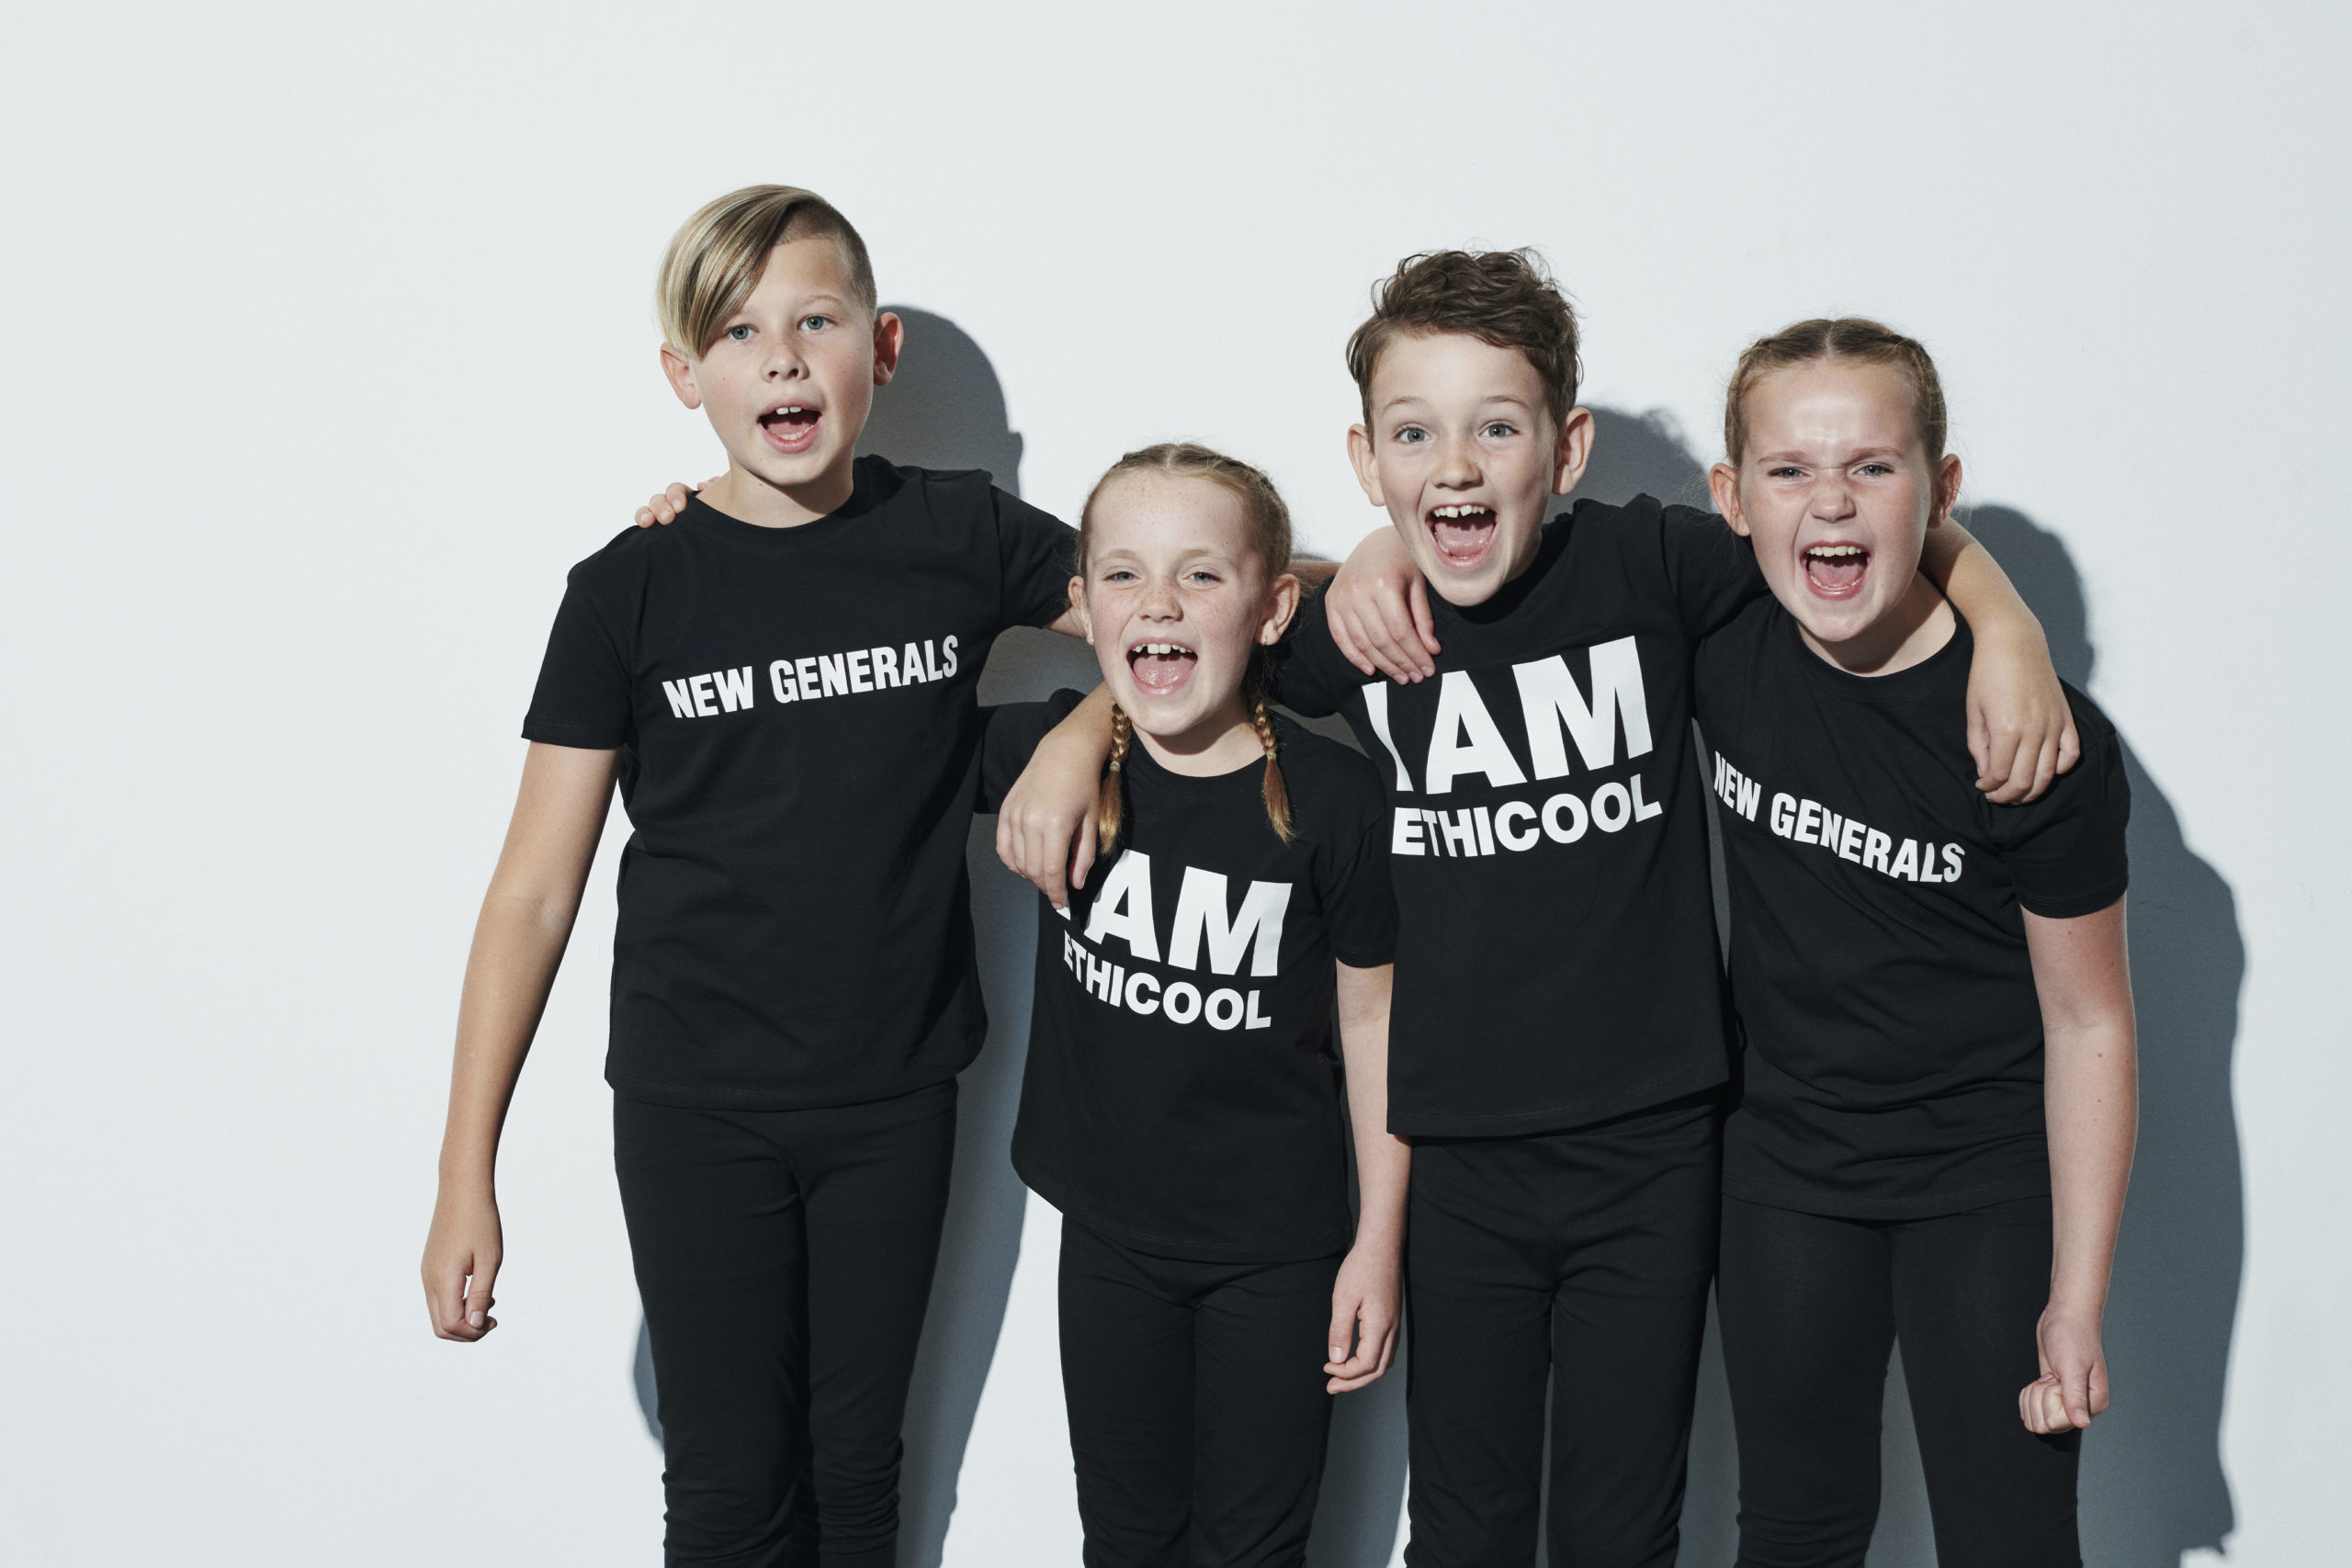 Relaunched this week New Generals ethical kids Scandi brand from Copenhagen